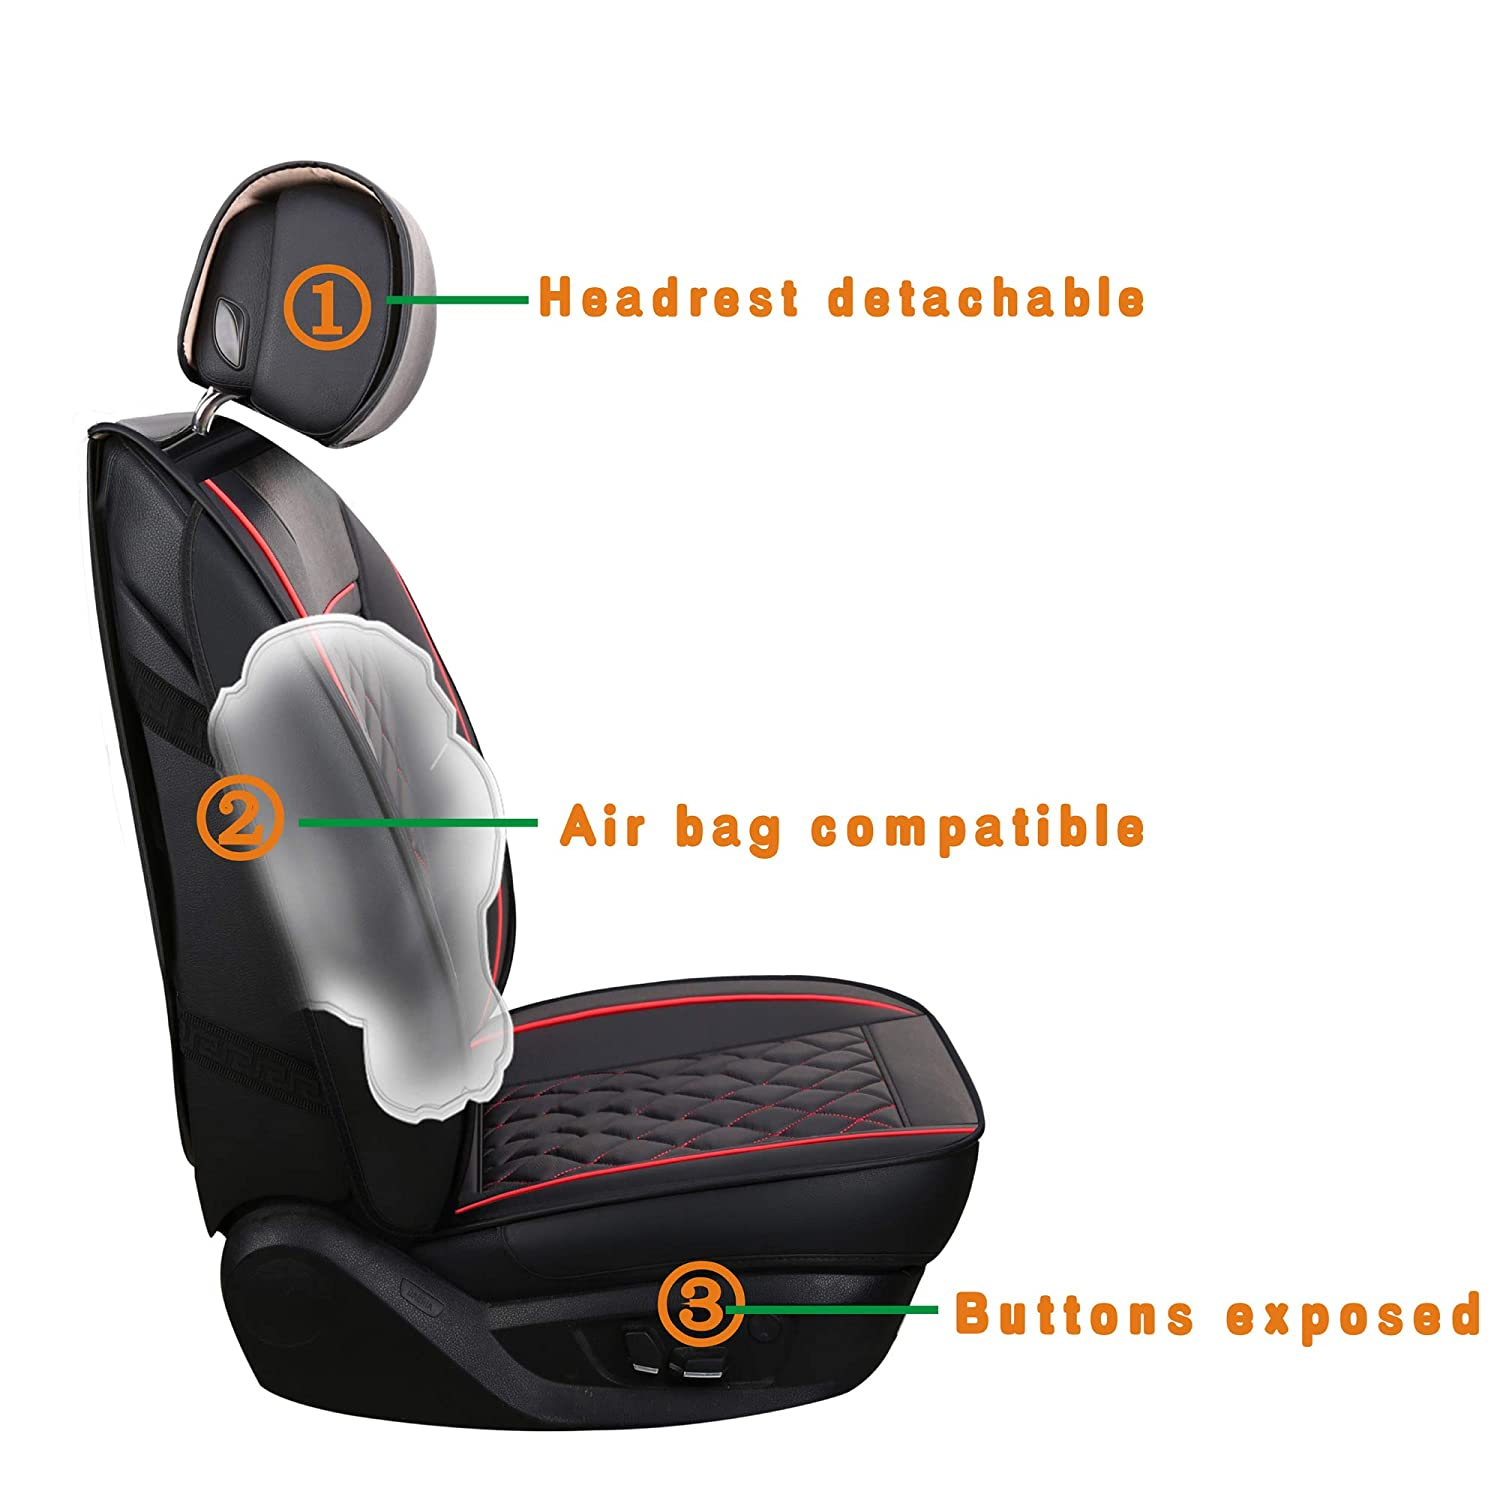 LUCKYMAN CLUB Rear Seat Covers Fit Most Sedan SUV Truck Rear Seat of Blk+Red Fit for Chevy Hyundai Toyota Kia Nissan Vw Honda Mazda